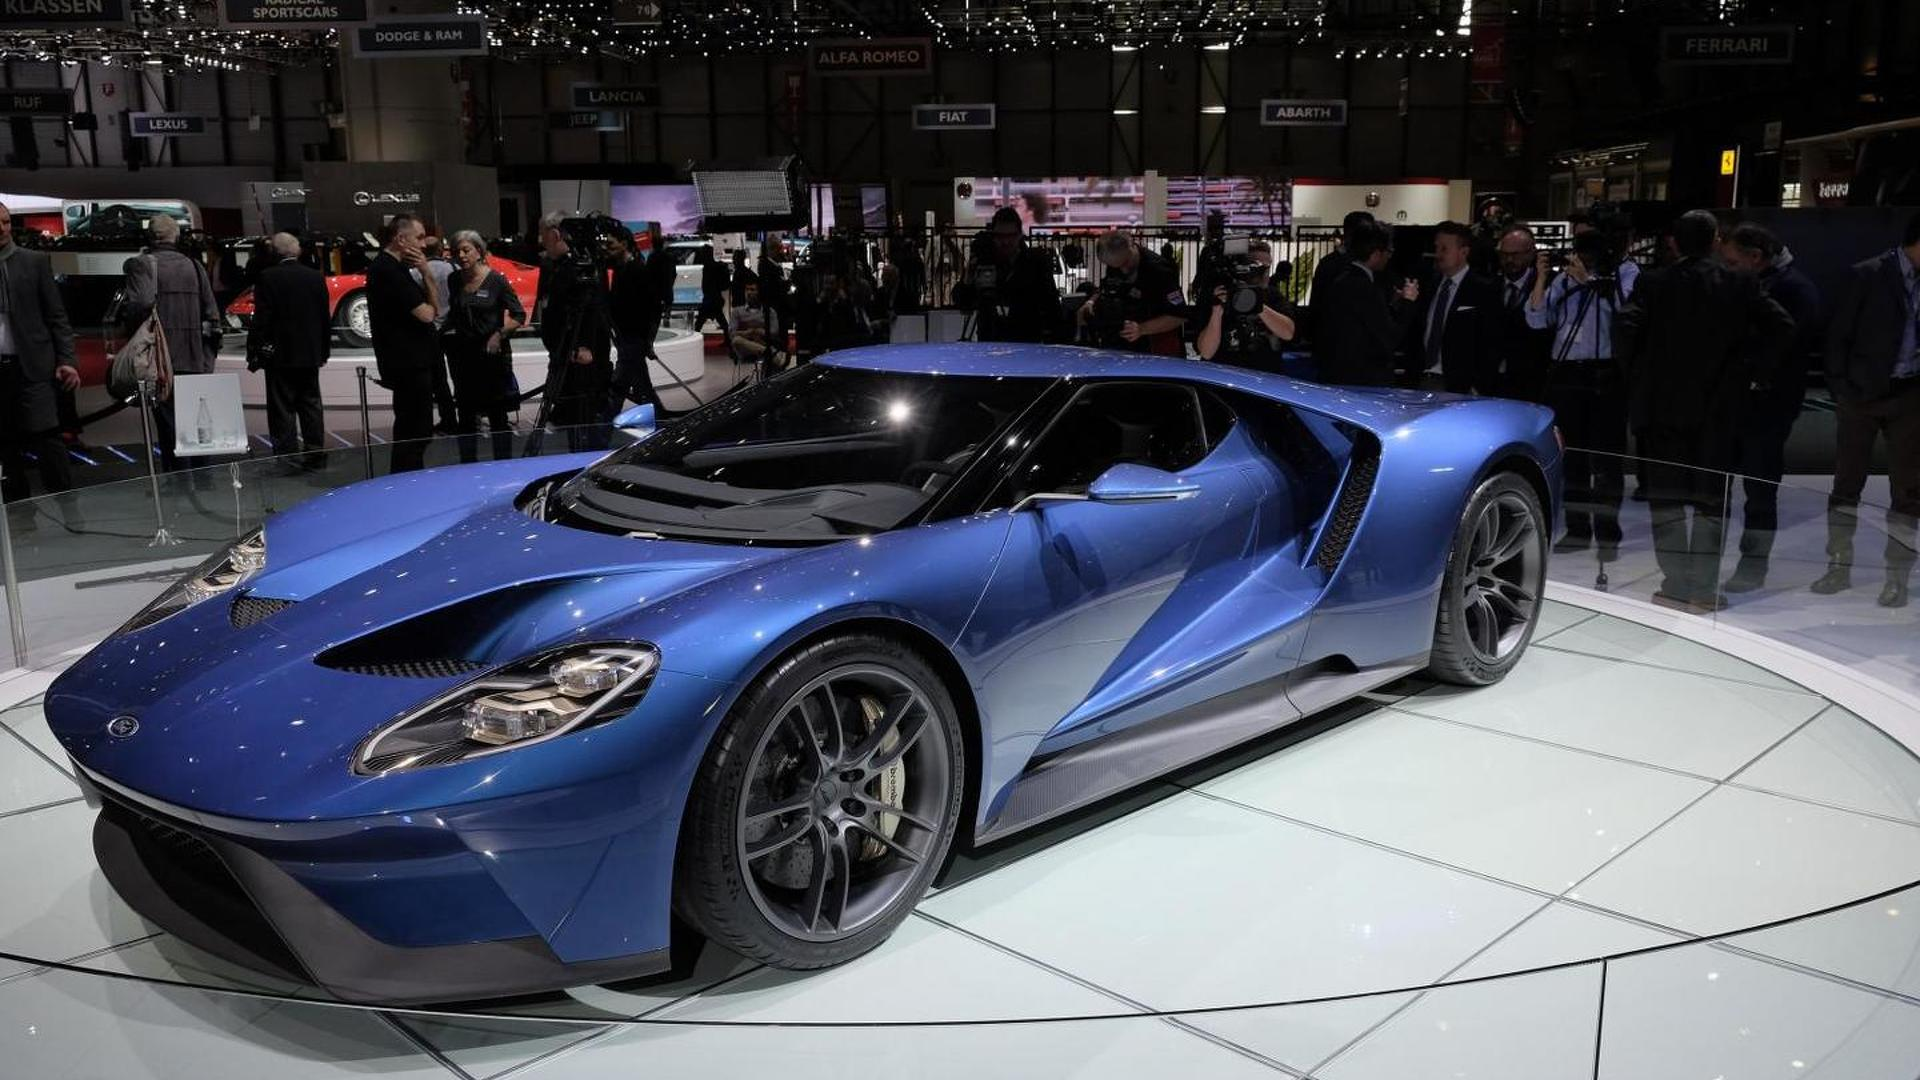 2017 Ford GT to cost around $400,000; annual production capped at 250 units